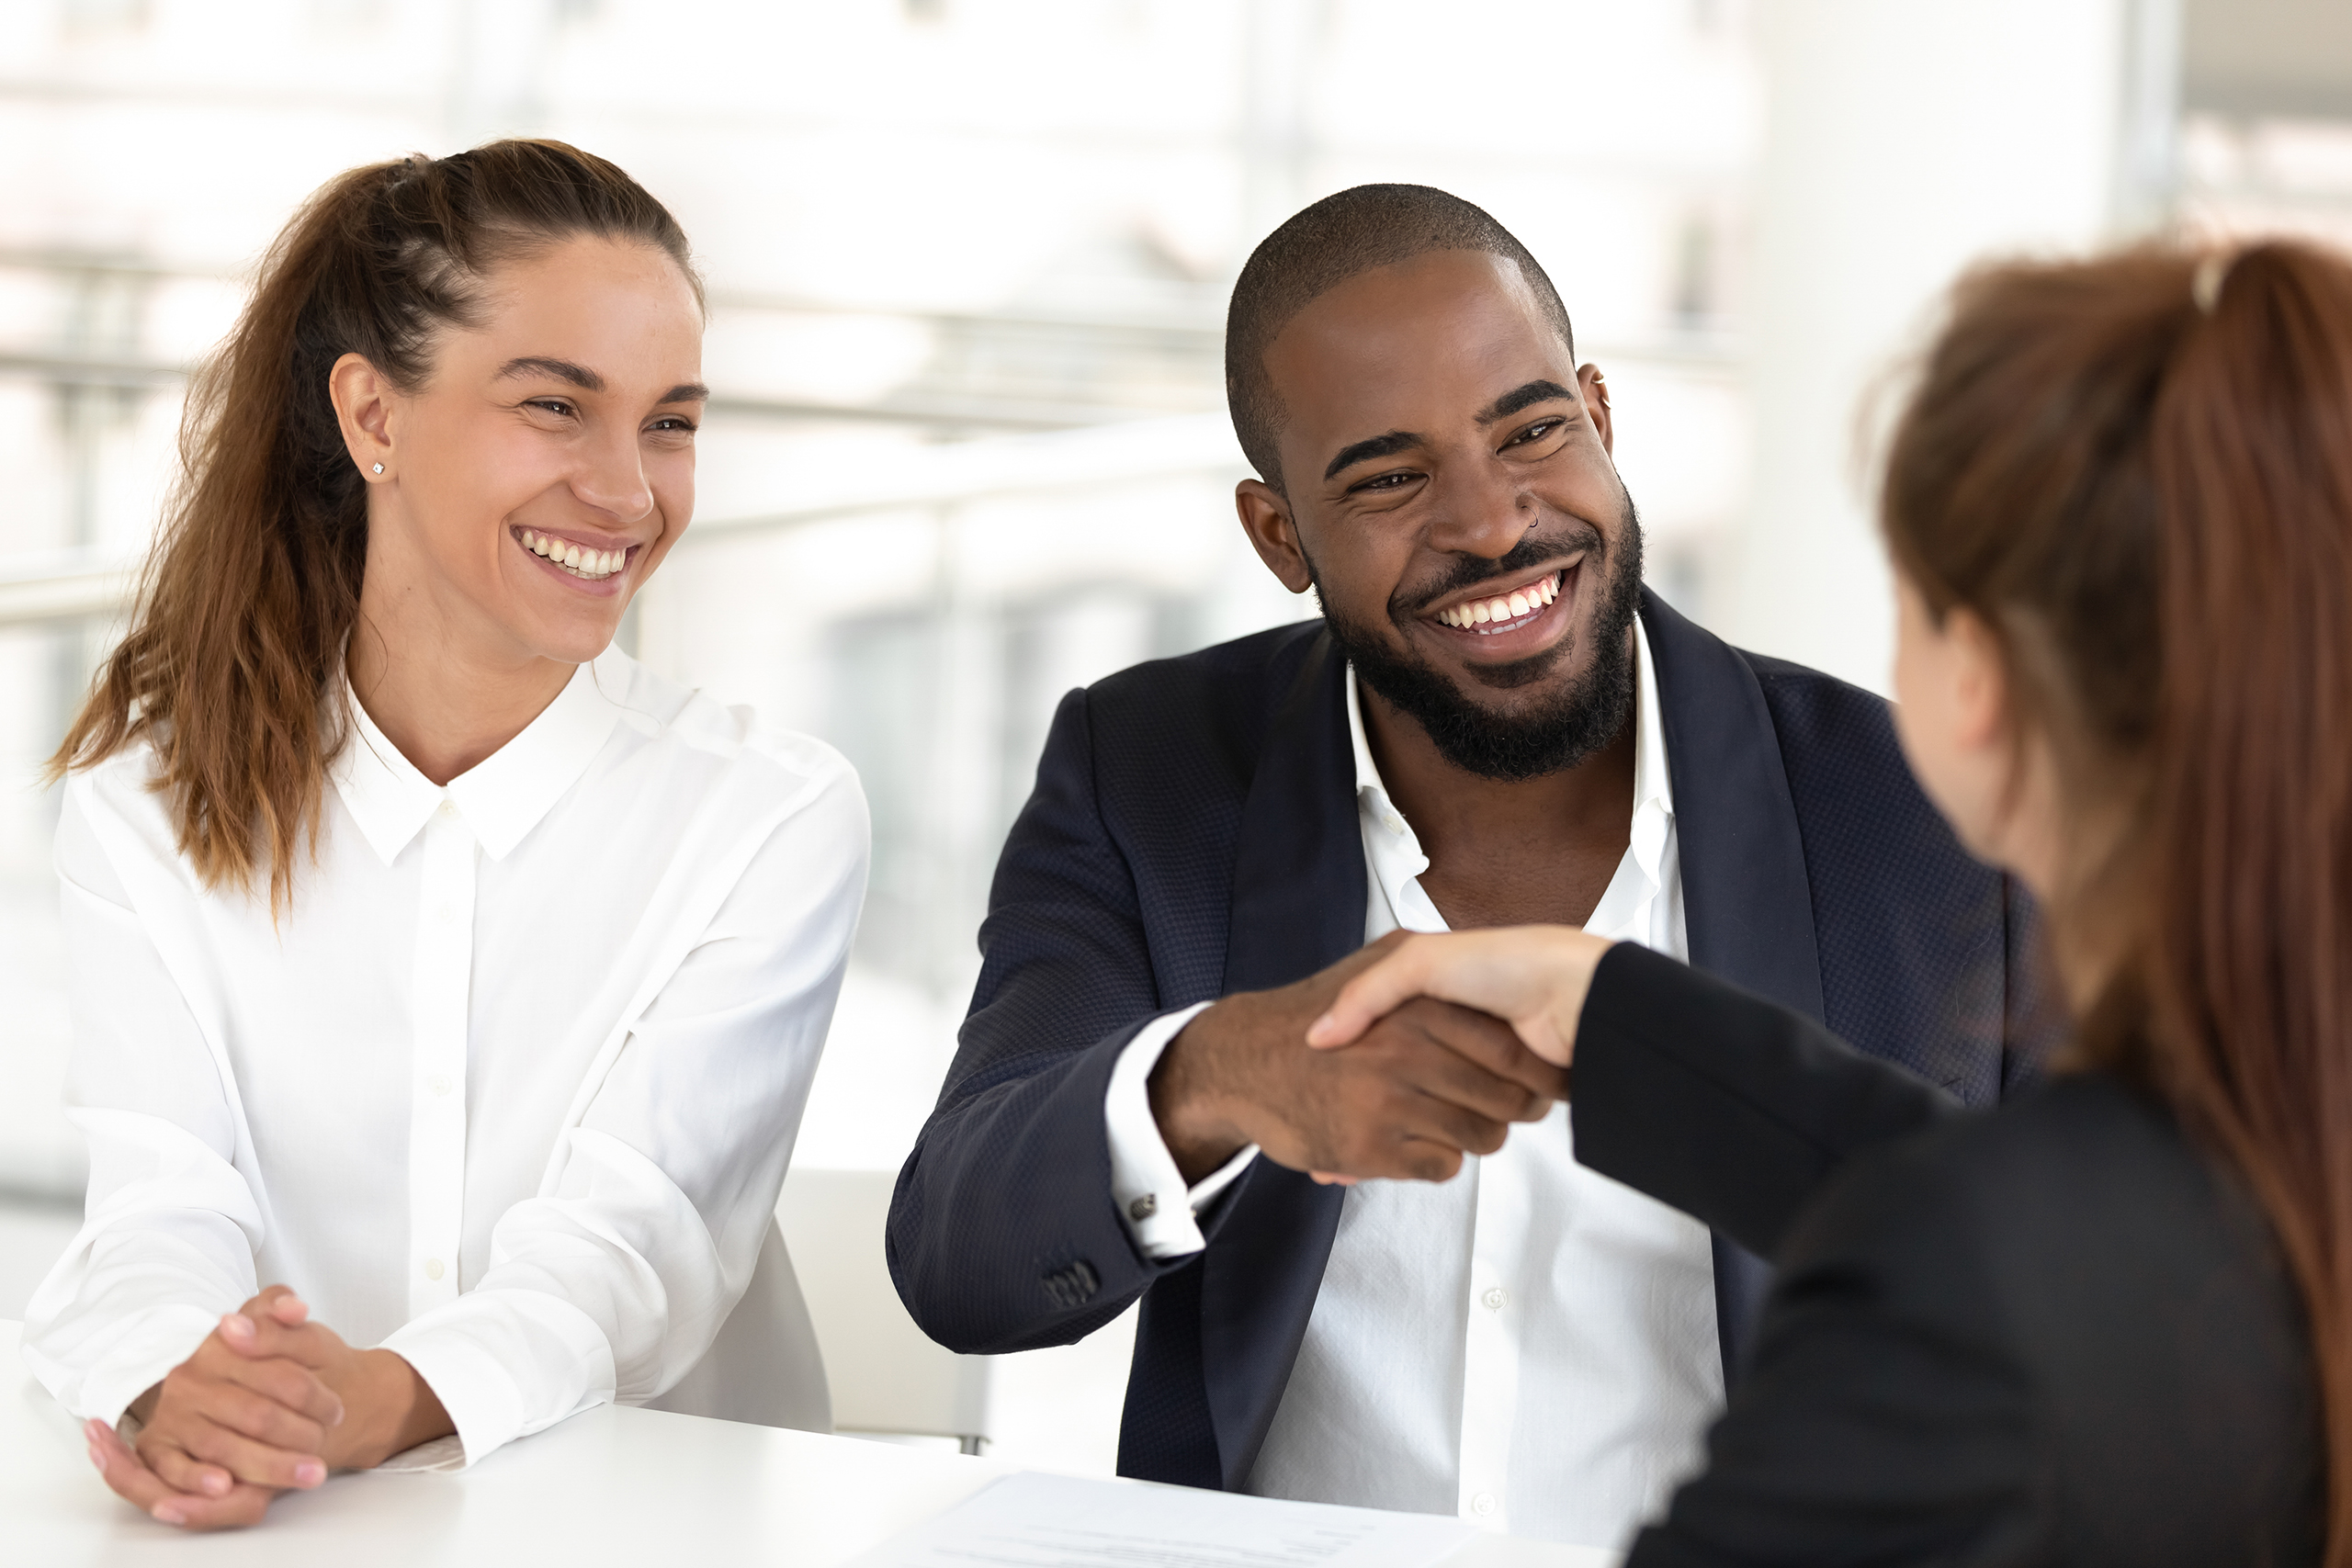 Happy mixed ethnicity couple clients handshake insurer realtor broker make agreement, african hr shake hand of caucasian candidate hiring at job interview, recruiting and insurance loan deal concept